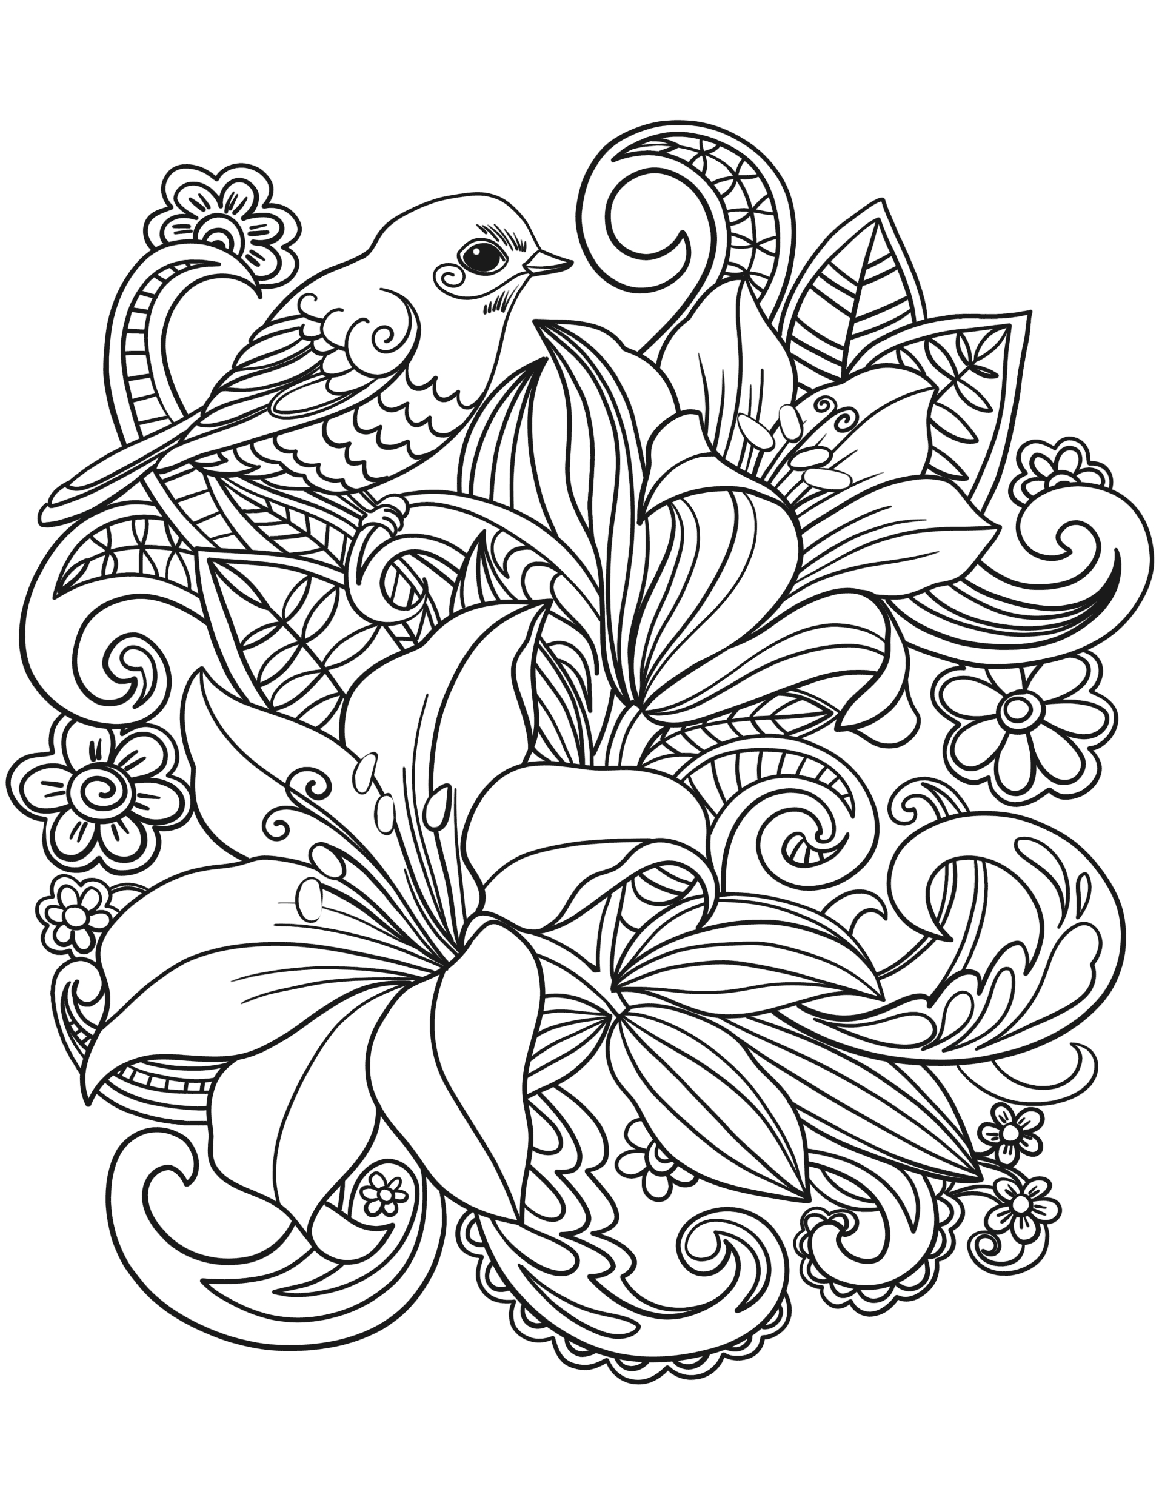 Floral Coloring Pages for Adults - Best Coloring Pages For Kids